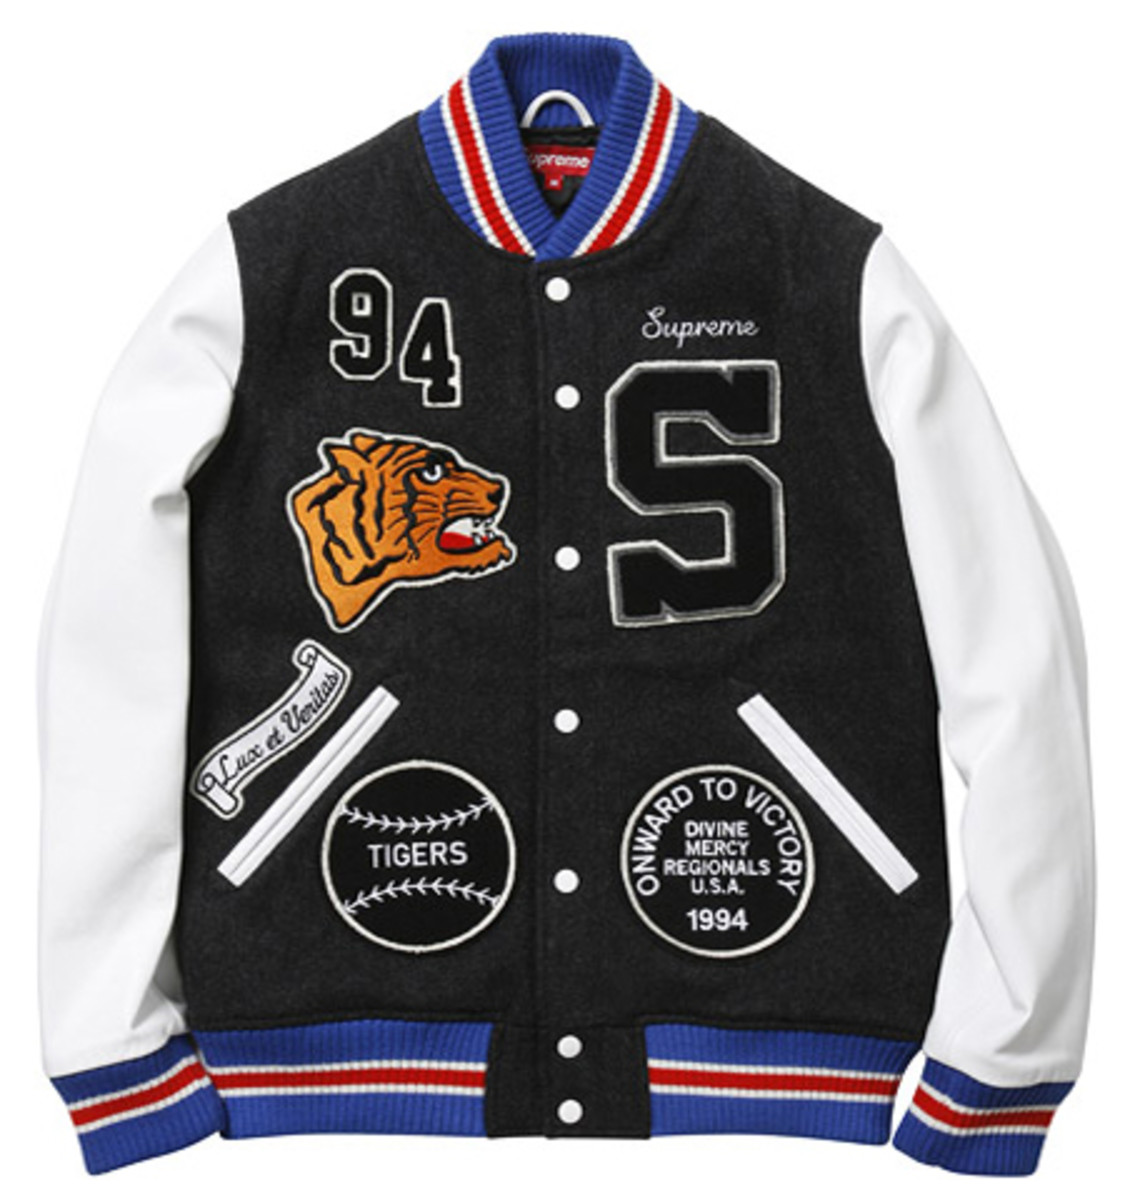 Supreme - Fall/Winter 2009 Collection - Varsity Jacket